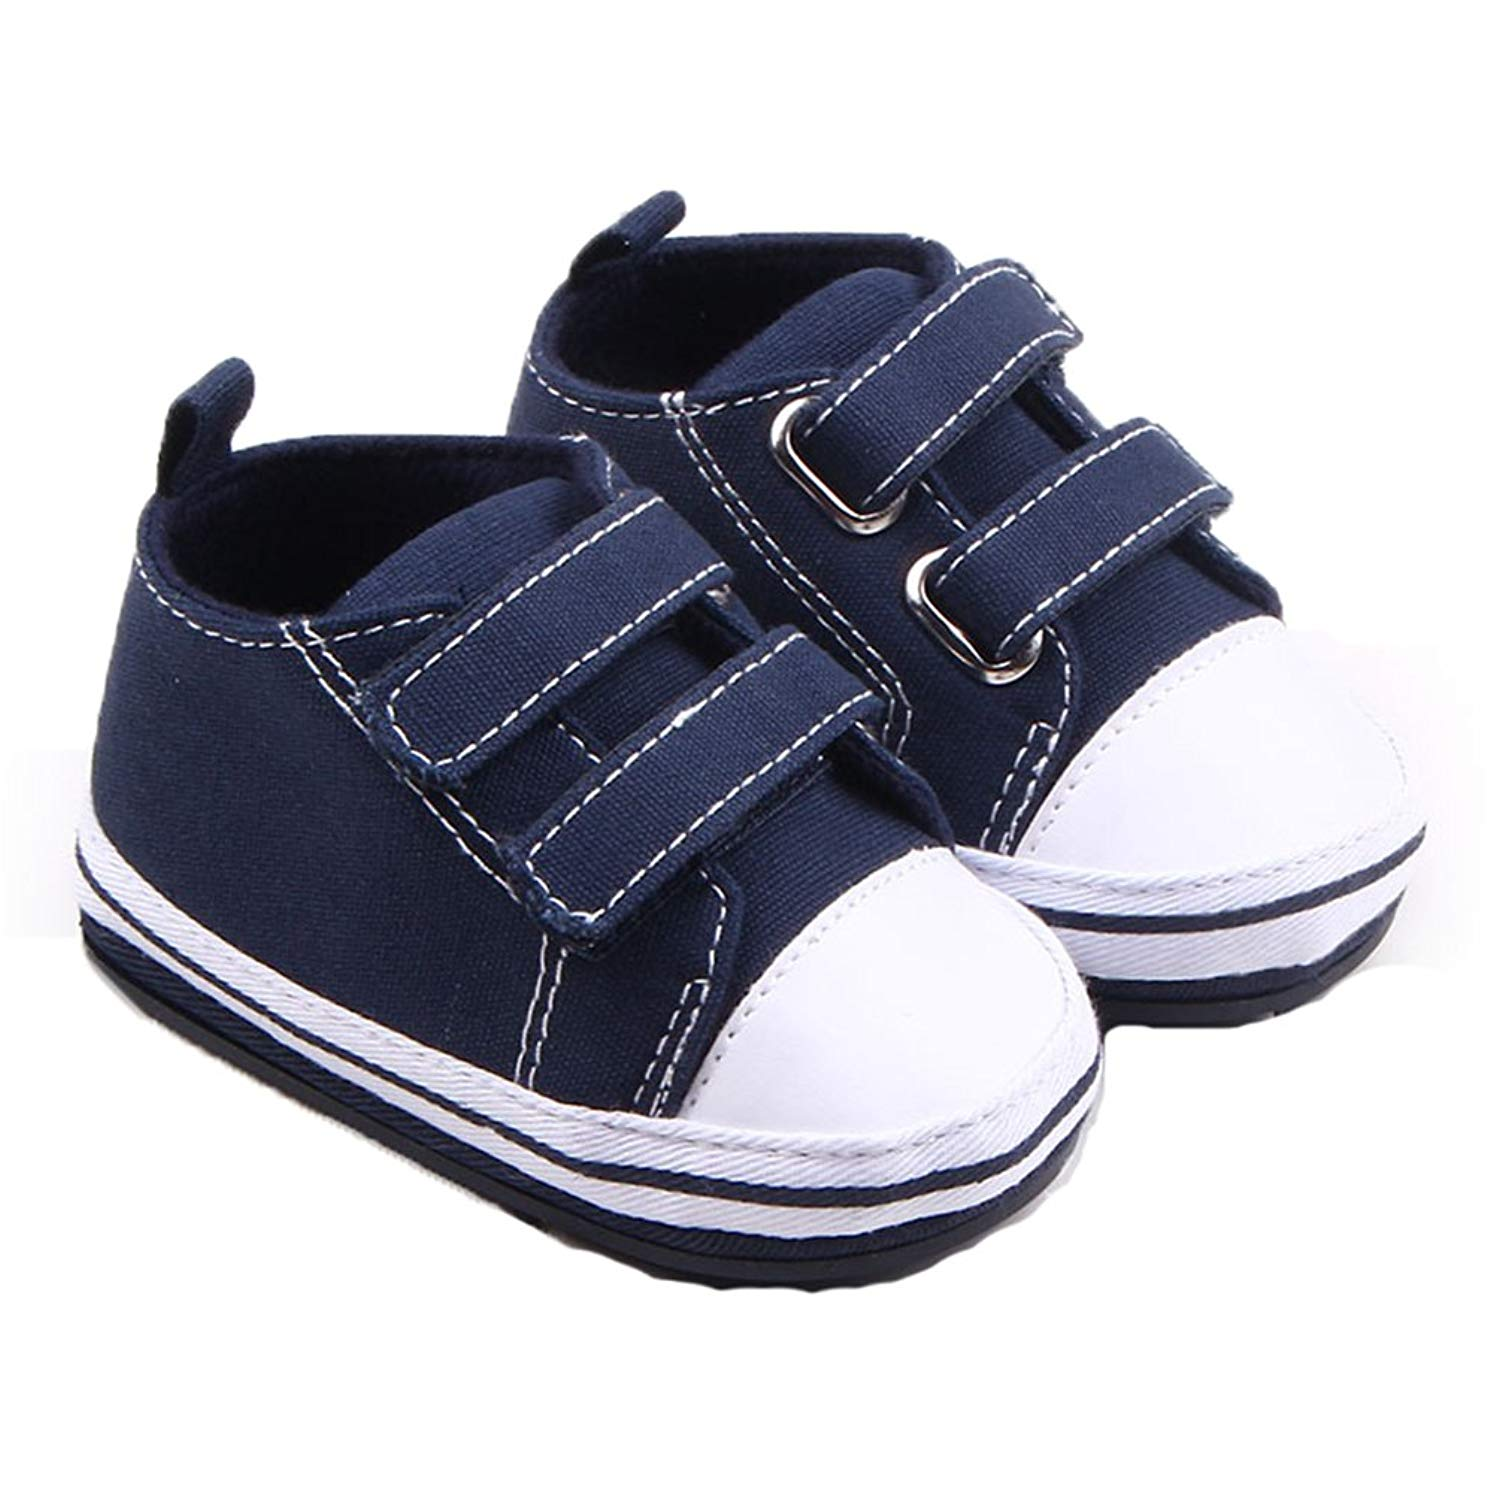 Neband 2 Straps Canvas Sneaker, Newborn Baby Anti-Skid Infant Prewalker Toddler Trainer Infant Prewalker